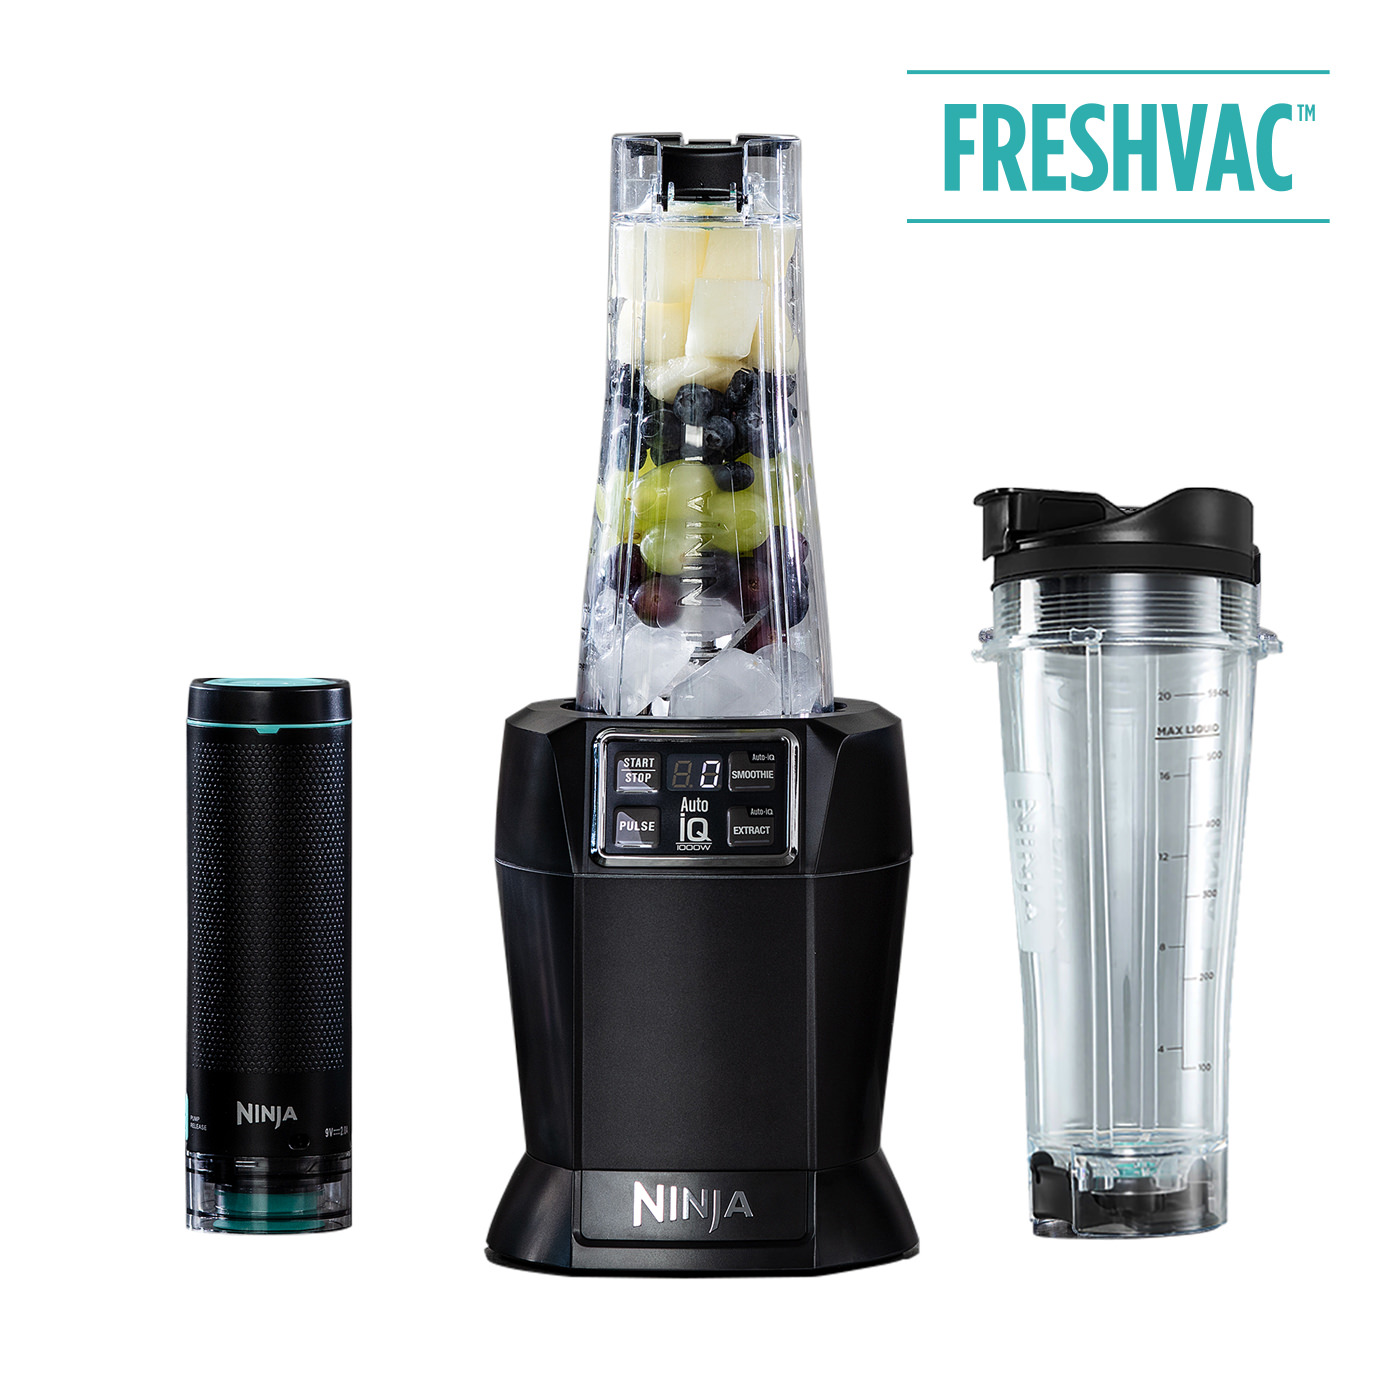 Nutri Ninja 1000W Personal Blender & Smoothie Maker with FreshVac Technology BL580UKV